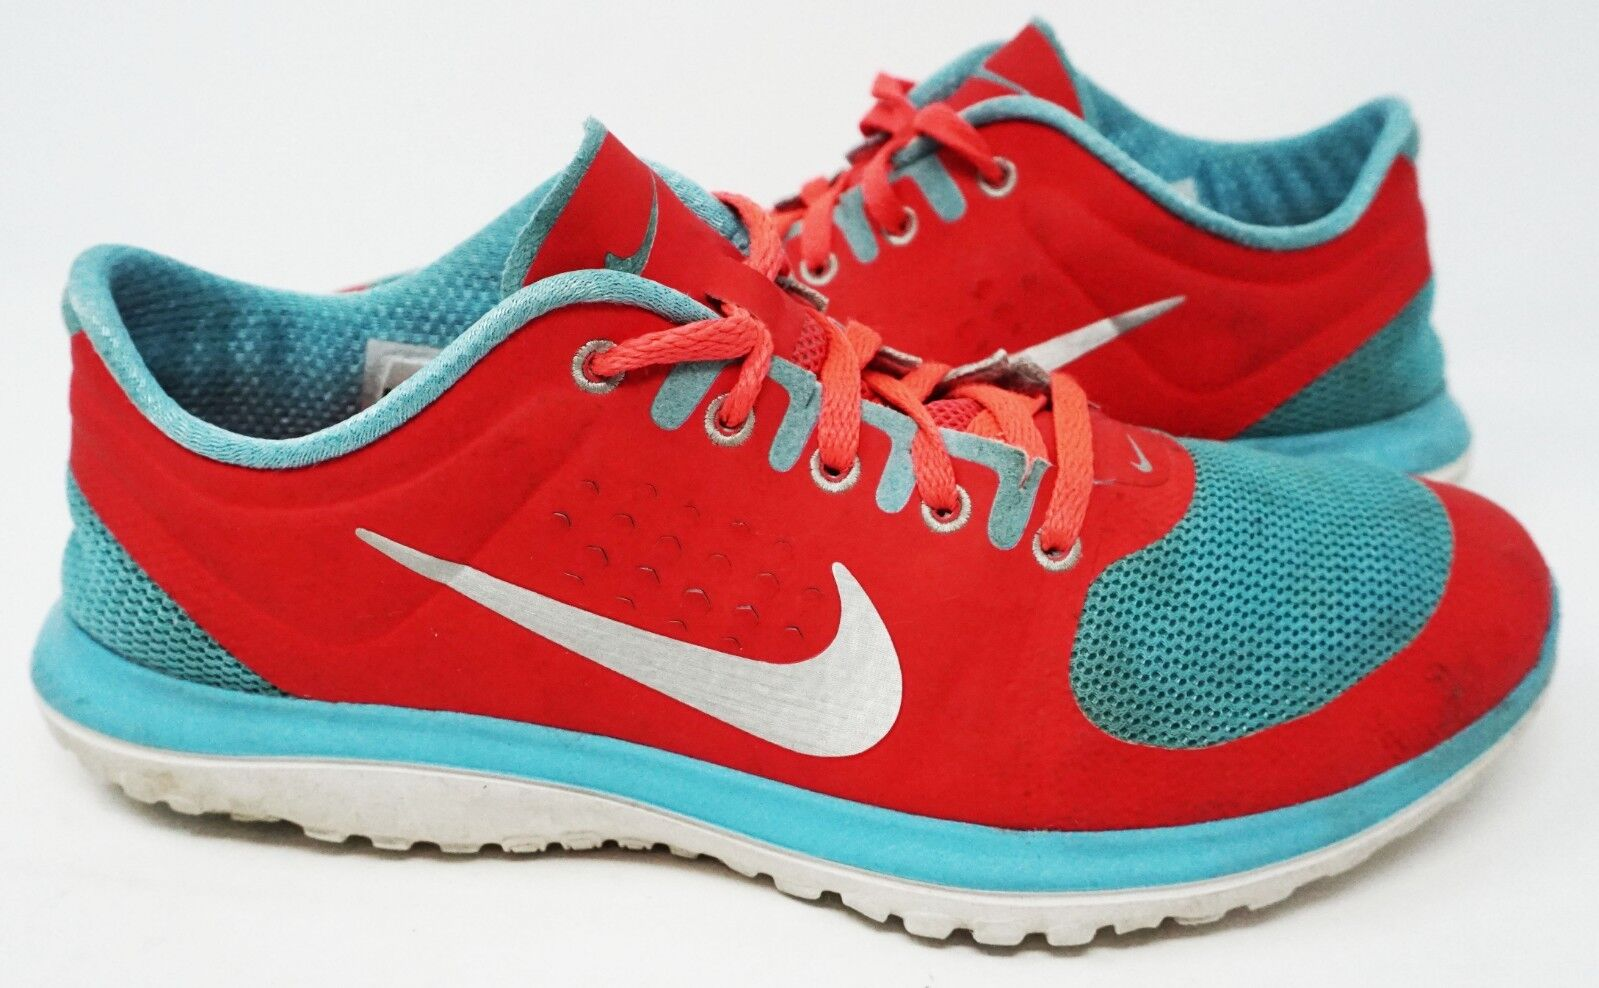 NIKE FS LITE RUN WOMEN'S RUNNING SHOE S50 (CRIMSON/BLUE/WHITE) SZ 6M SHIPS FREE S50 SHOE 1f14ea